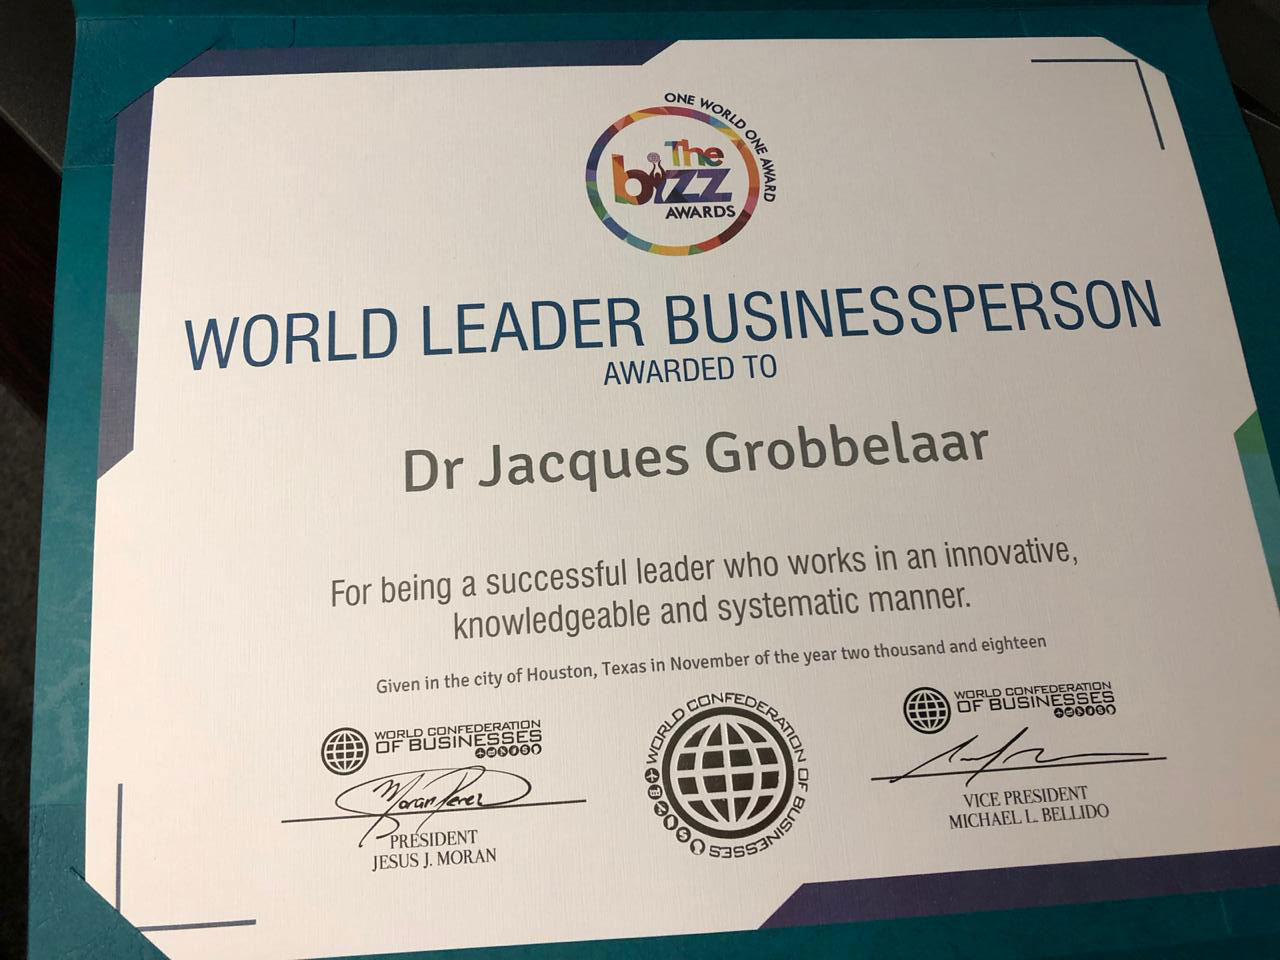 World Leader Businessperson